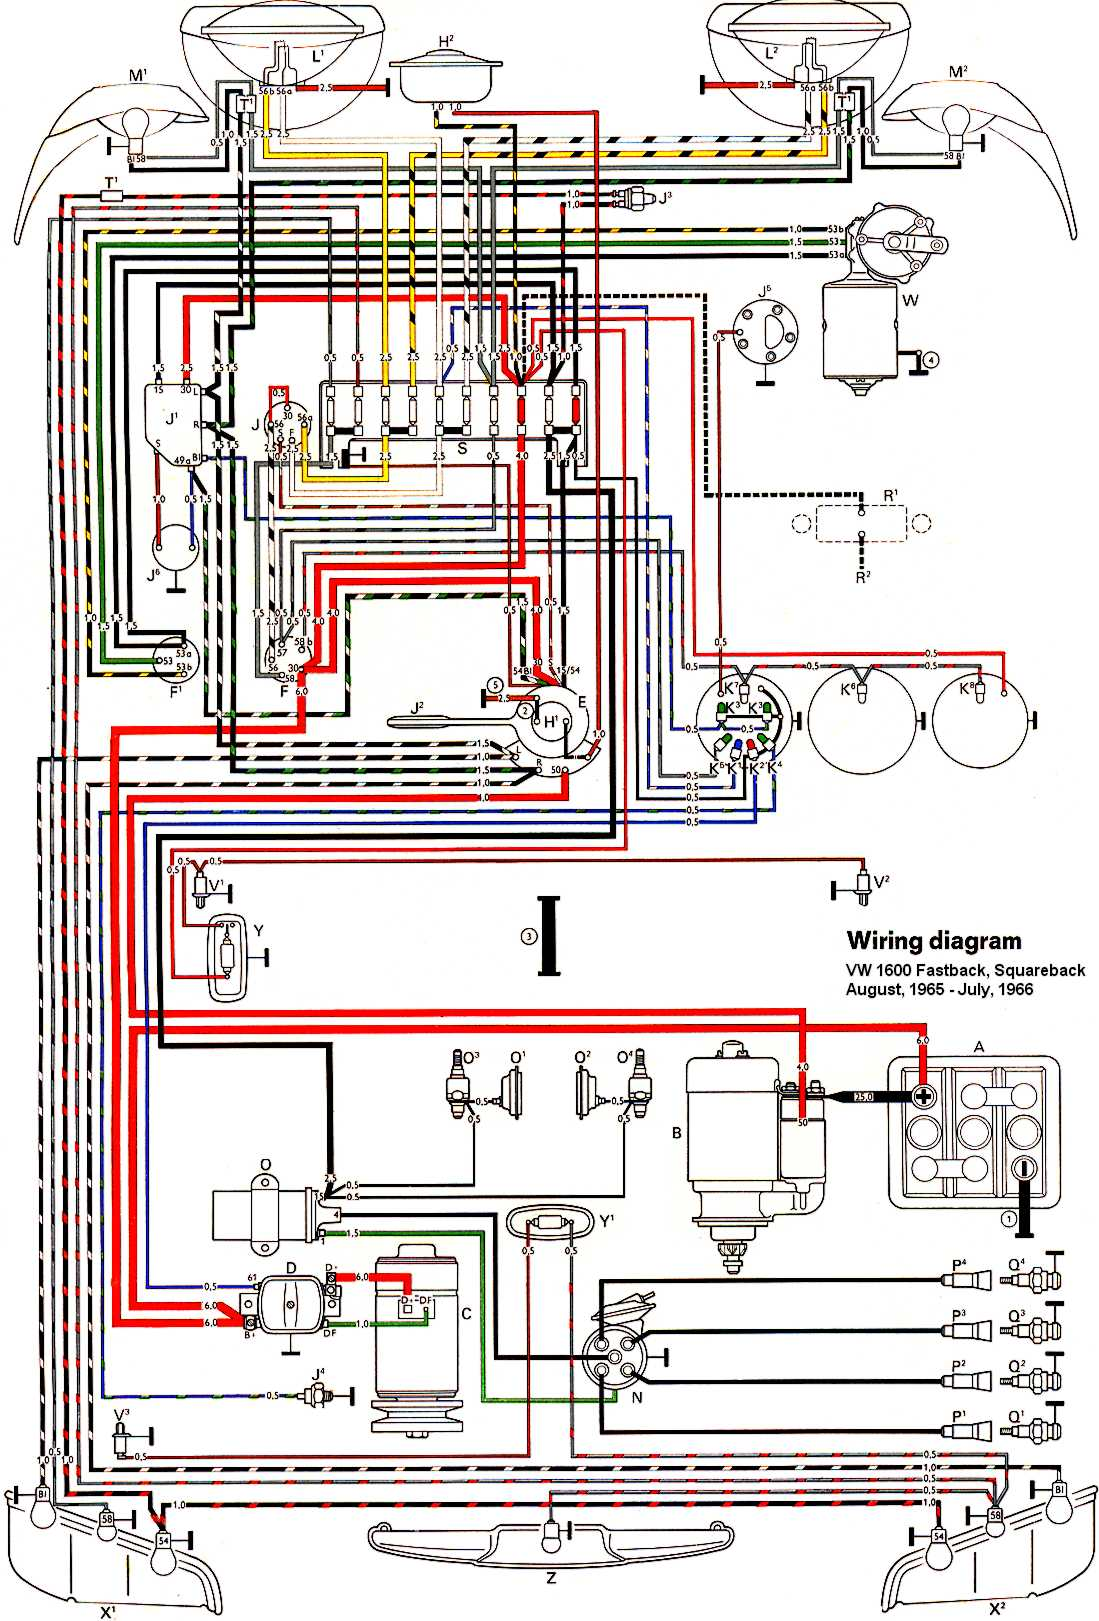 Vw Beetle Engine Wiring Harness : Thesamba type wiring diagrams